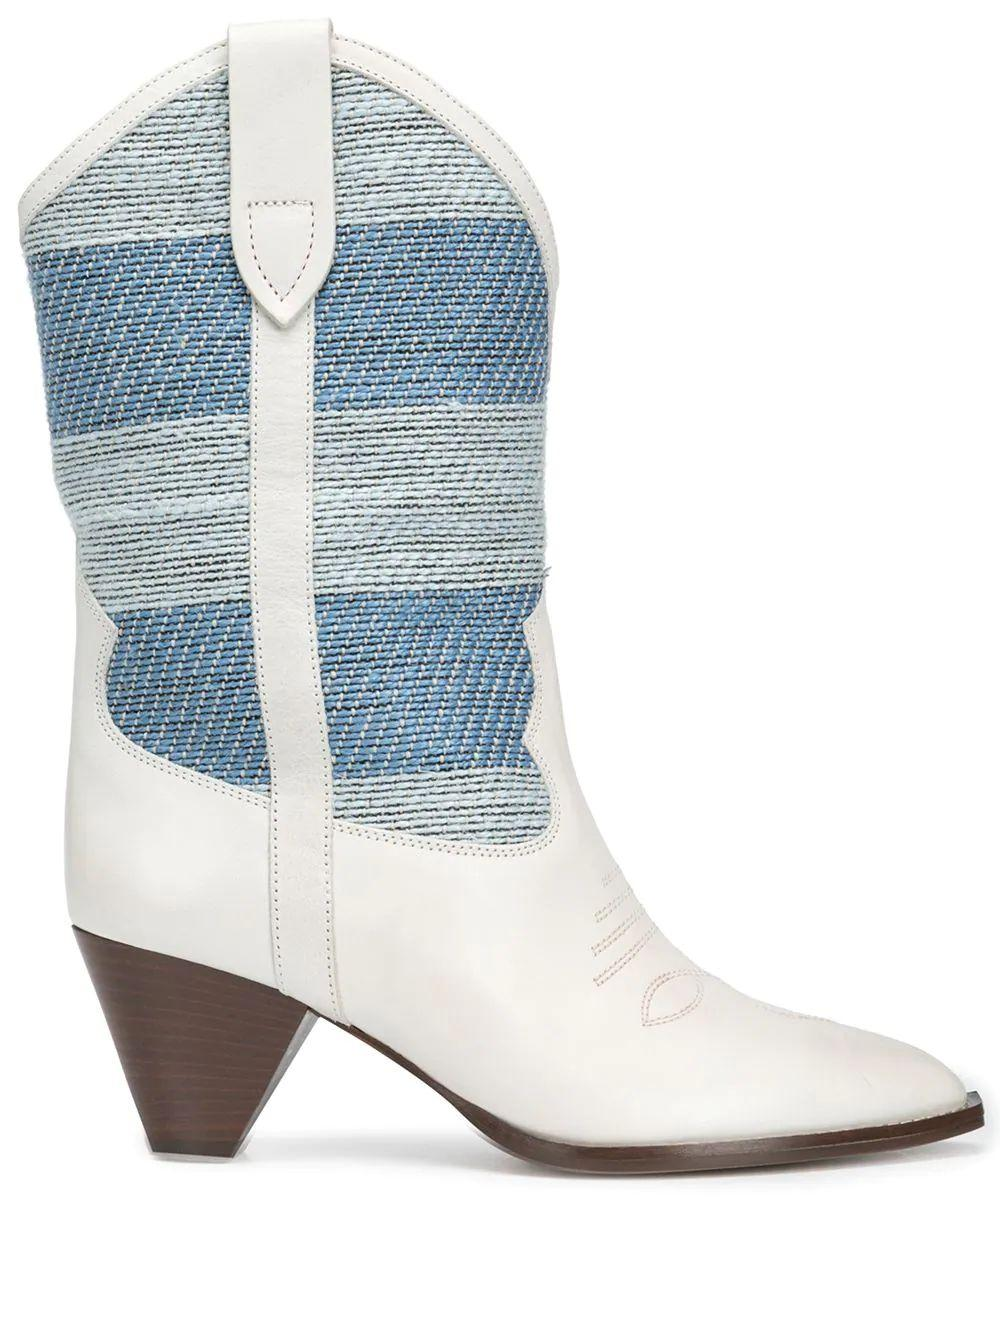 Luliette Boot Item # BO0676-21E003S